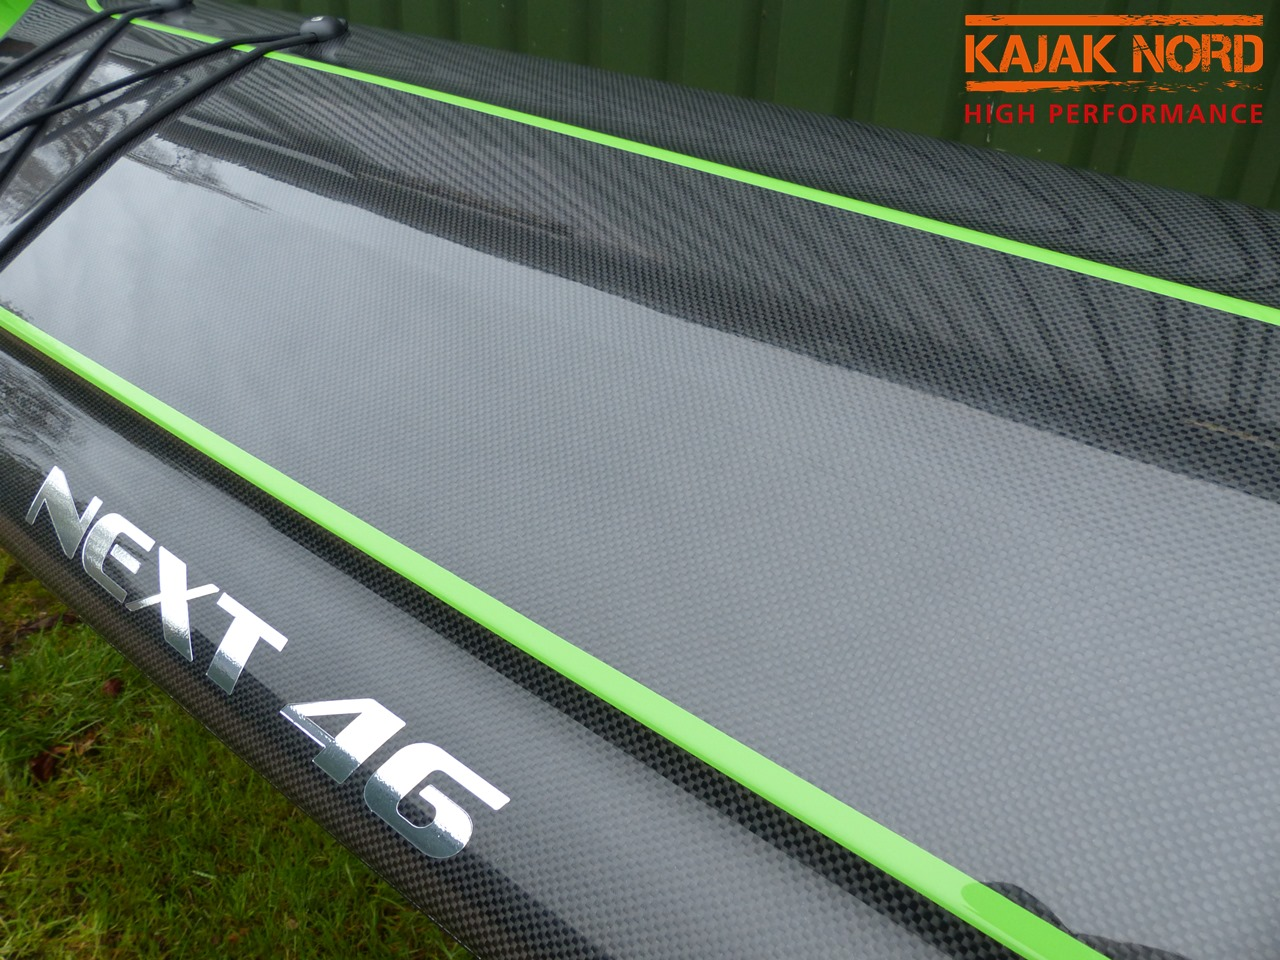 Surfski VAJDA Next 46 Elite, Kajak Nord